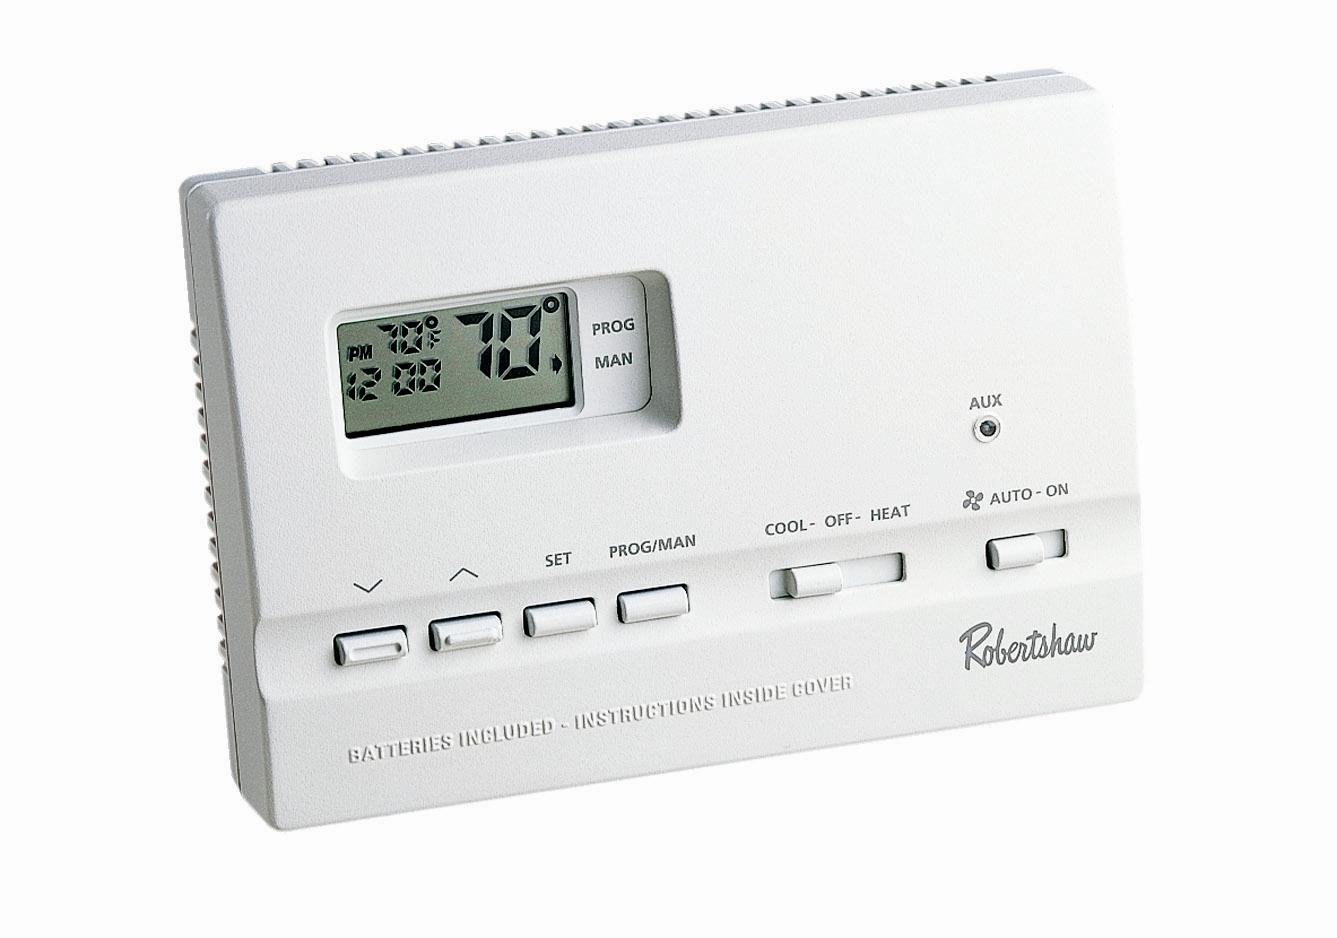 ROBERTSHAW 9615* DIGITAL PROGRAMMABLE THERMOSTAT - Home And Garden Products - Amazon.com